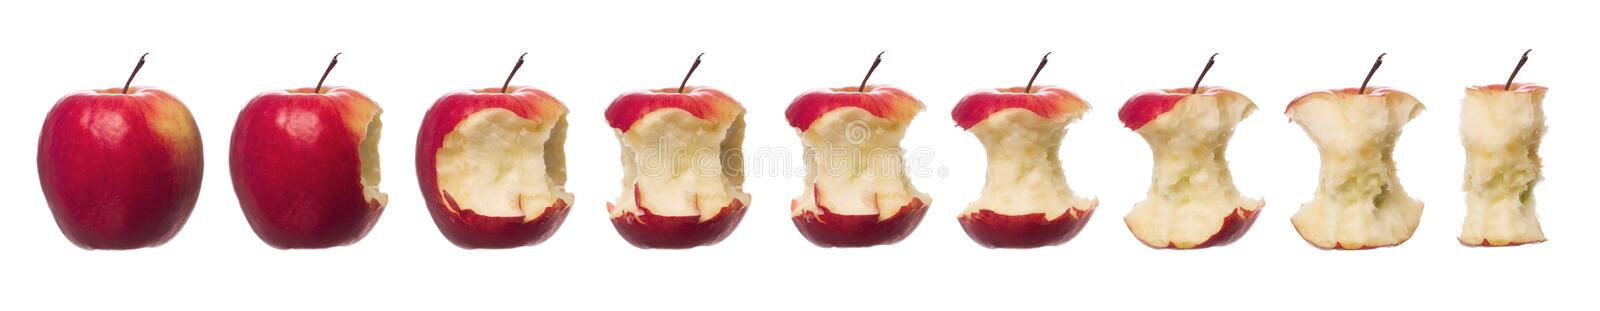 Red apples in progress stock images